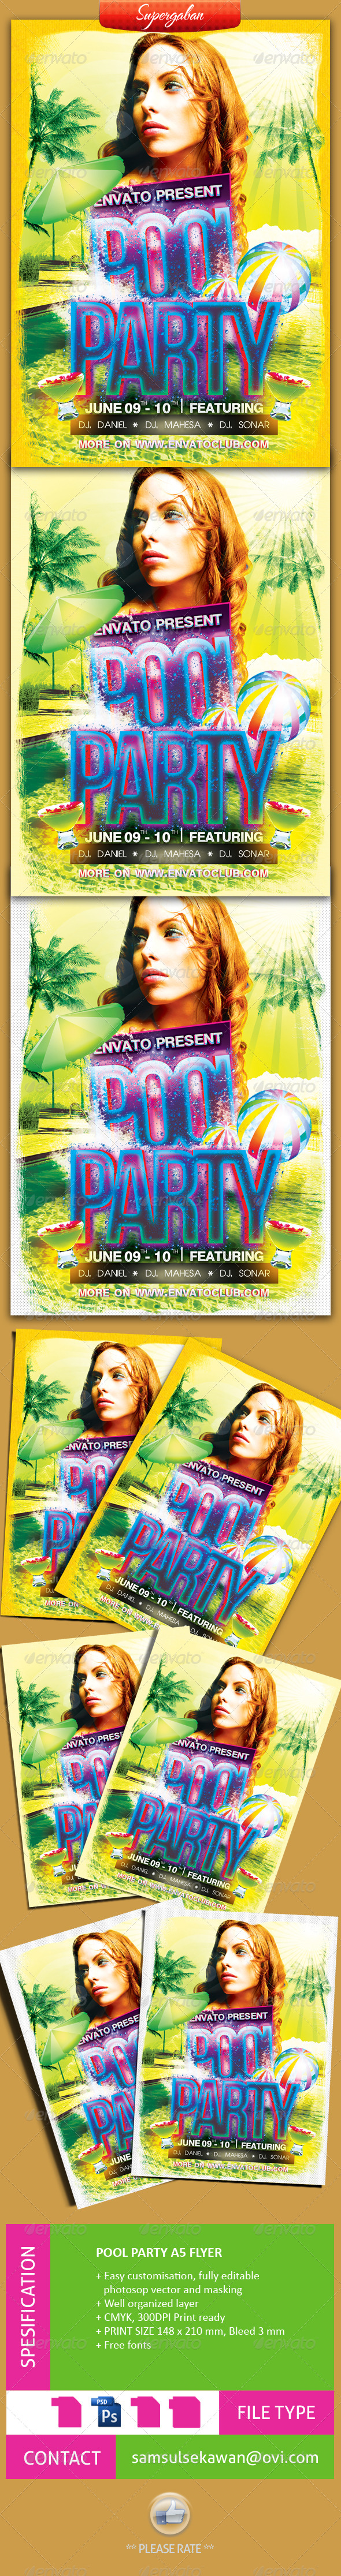 GraphicRiver Pool Party A5 Flyer 4514275 Created: